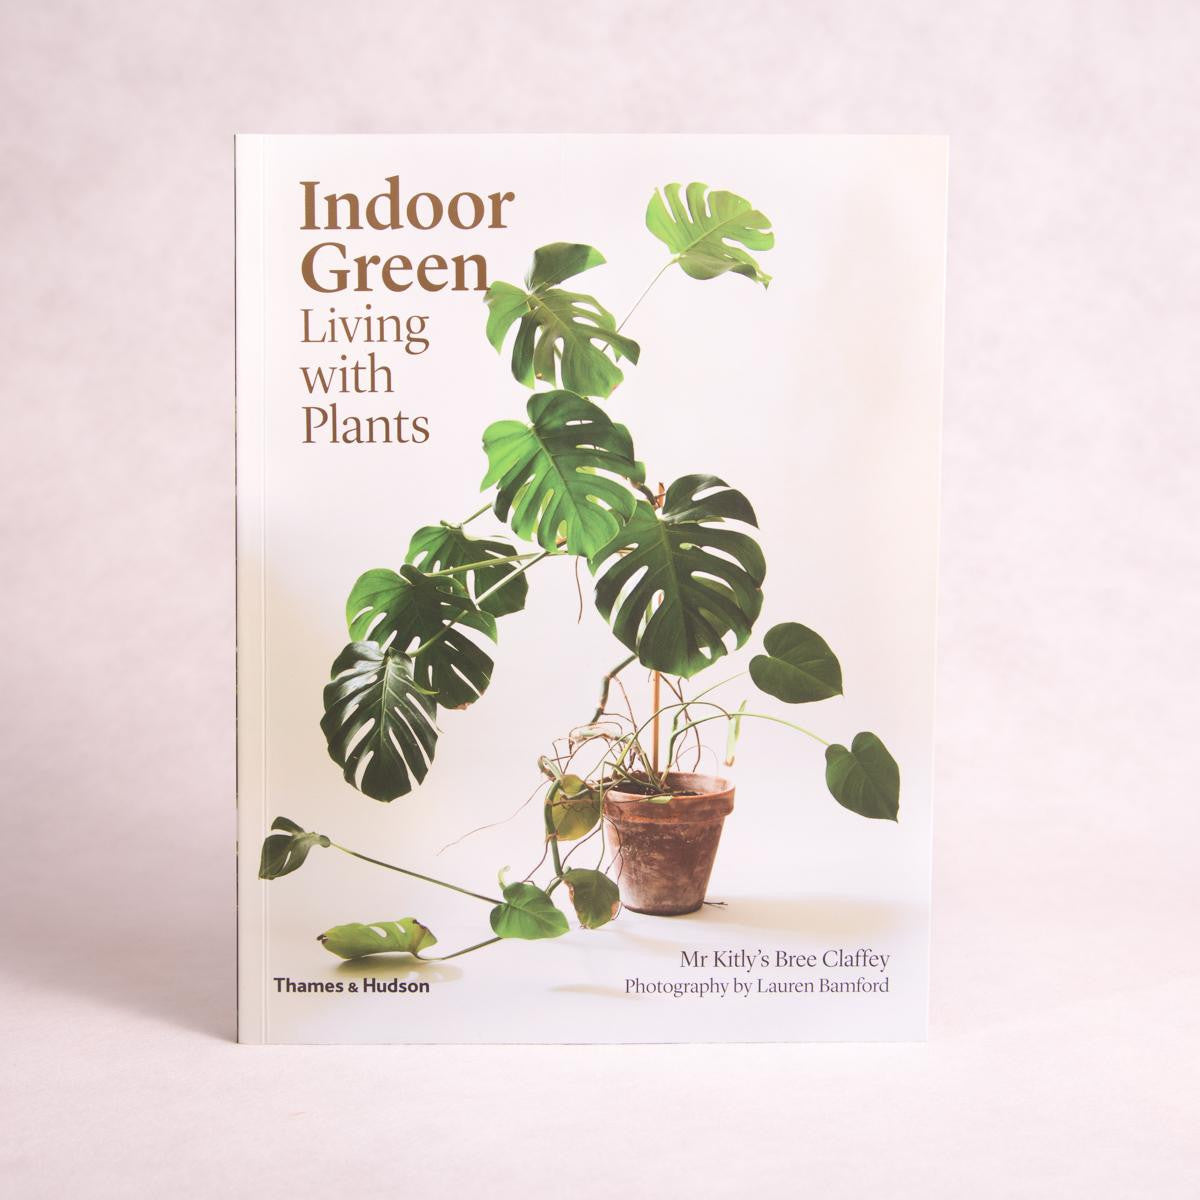 Indoor Green: Living with Plants | By Mr Kitley's Bree Claffey - Gardening Books - Throw Some Seeds - Australian gardening gifts and eco products online!